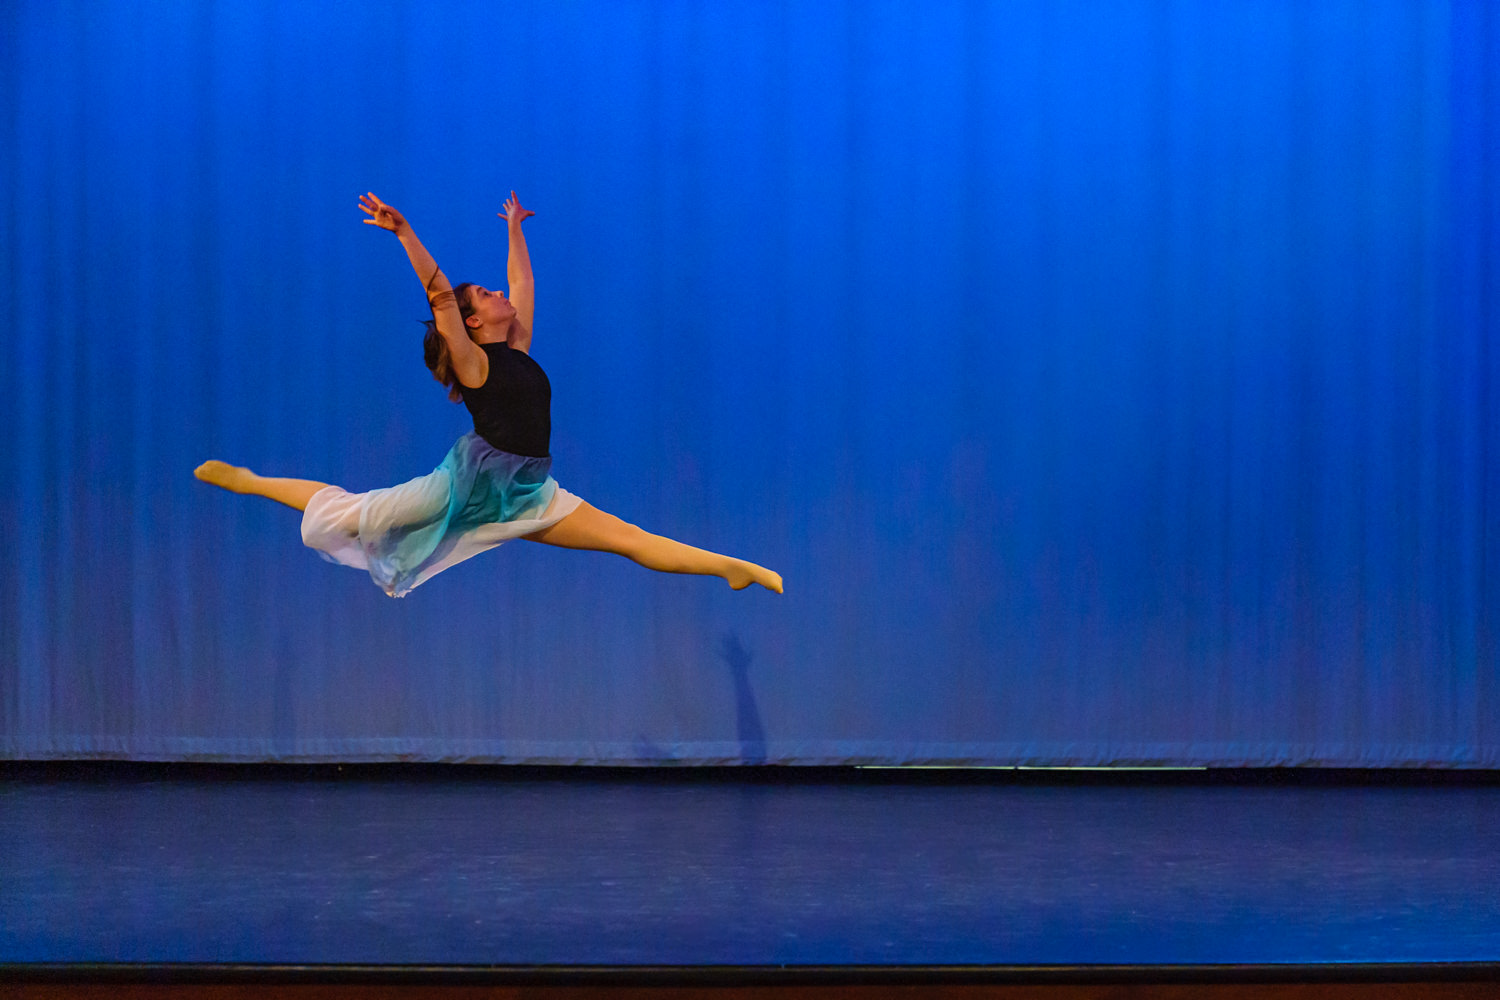 LUHS Winter Dance Recital 2019